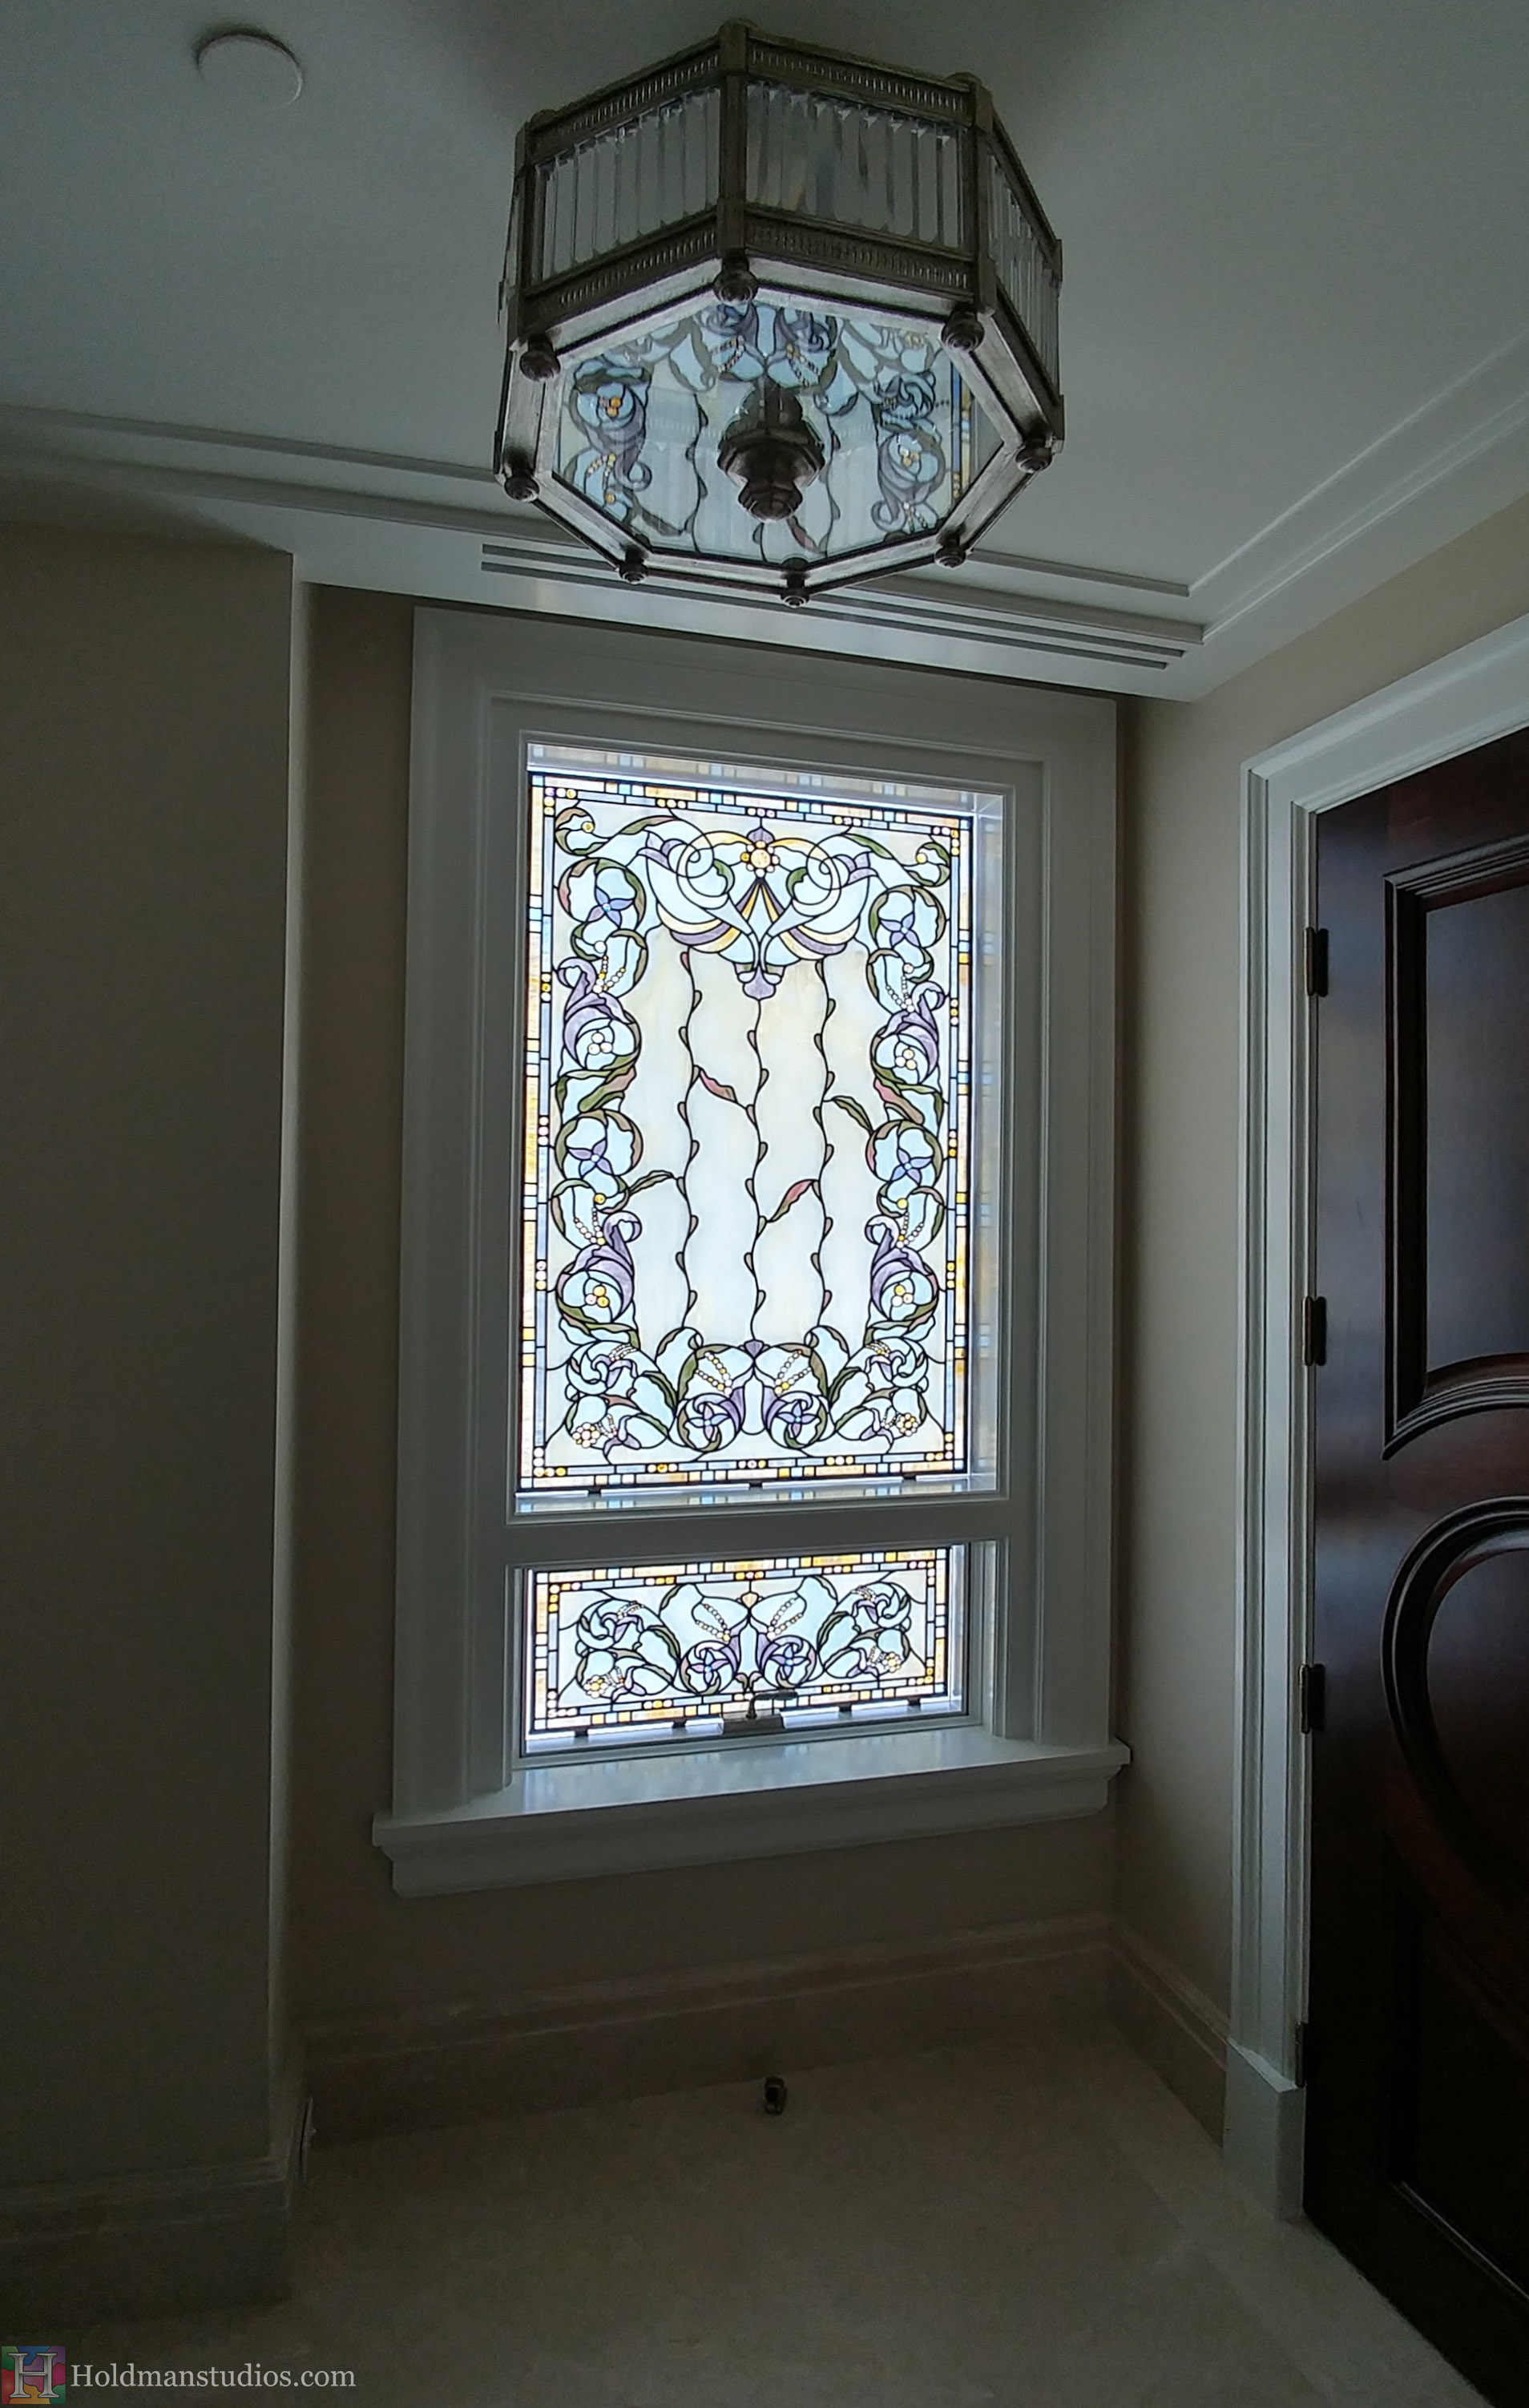 Holdman-Studios-Stained-Glass-Hallway-Windows-Flowers-Floral-Pattern-Handmade-Jewels-Square-Rectangles.jpg